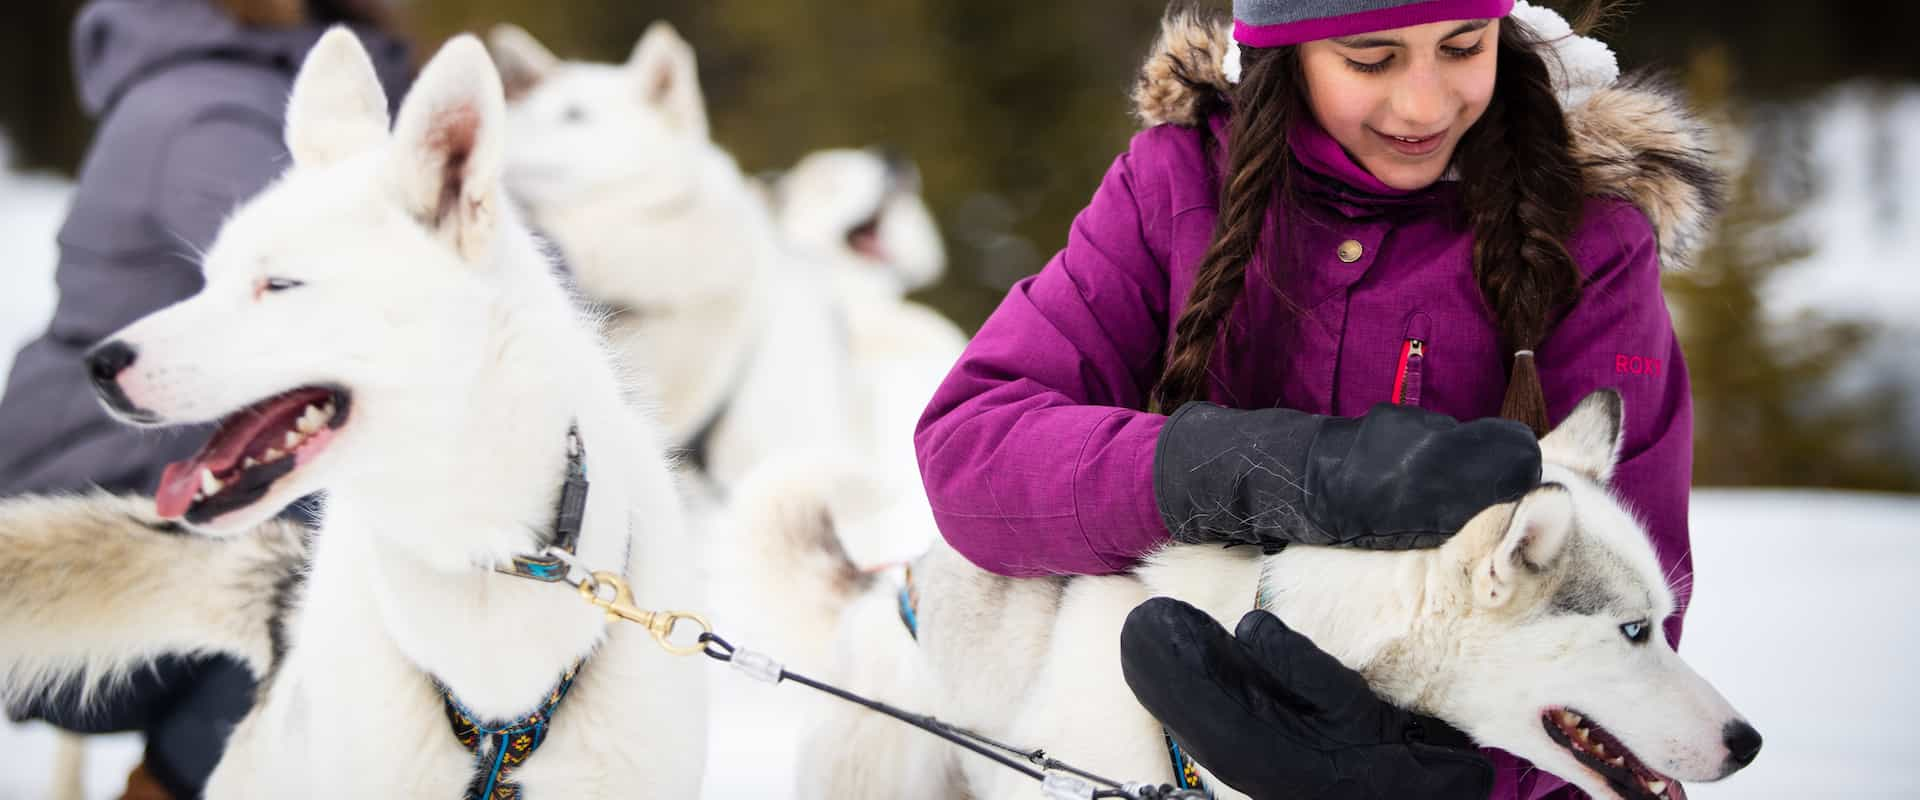 Children petting dogs on a Canmore dogsledding tour near Banff